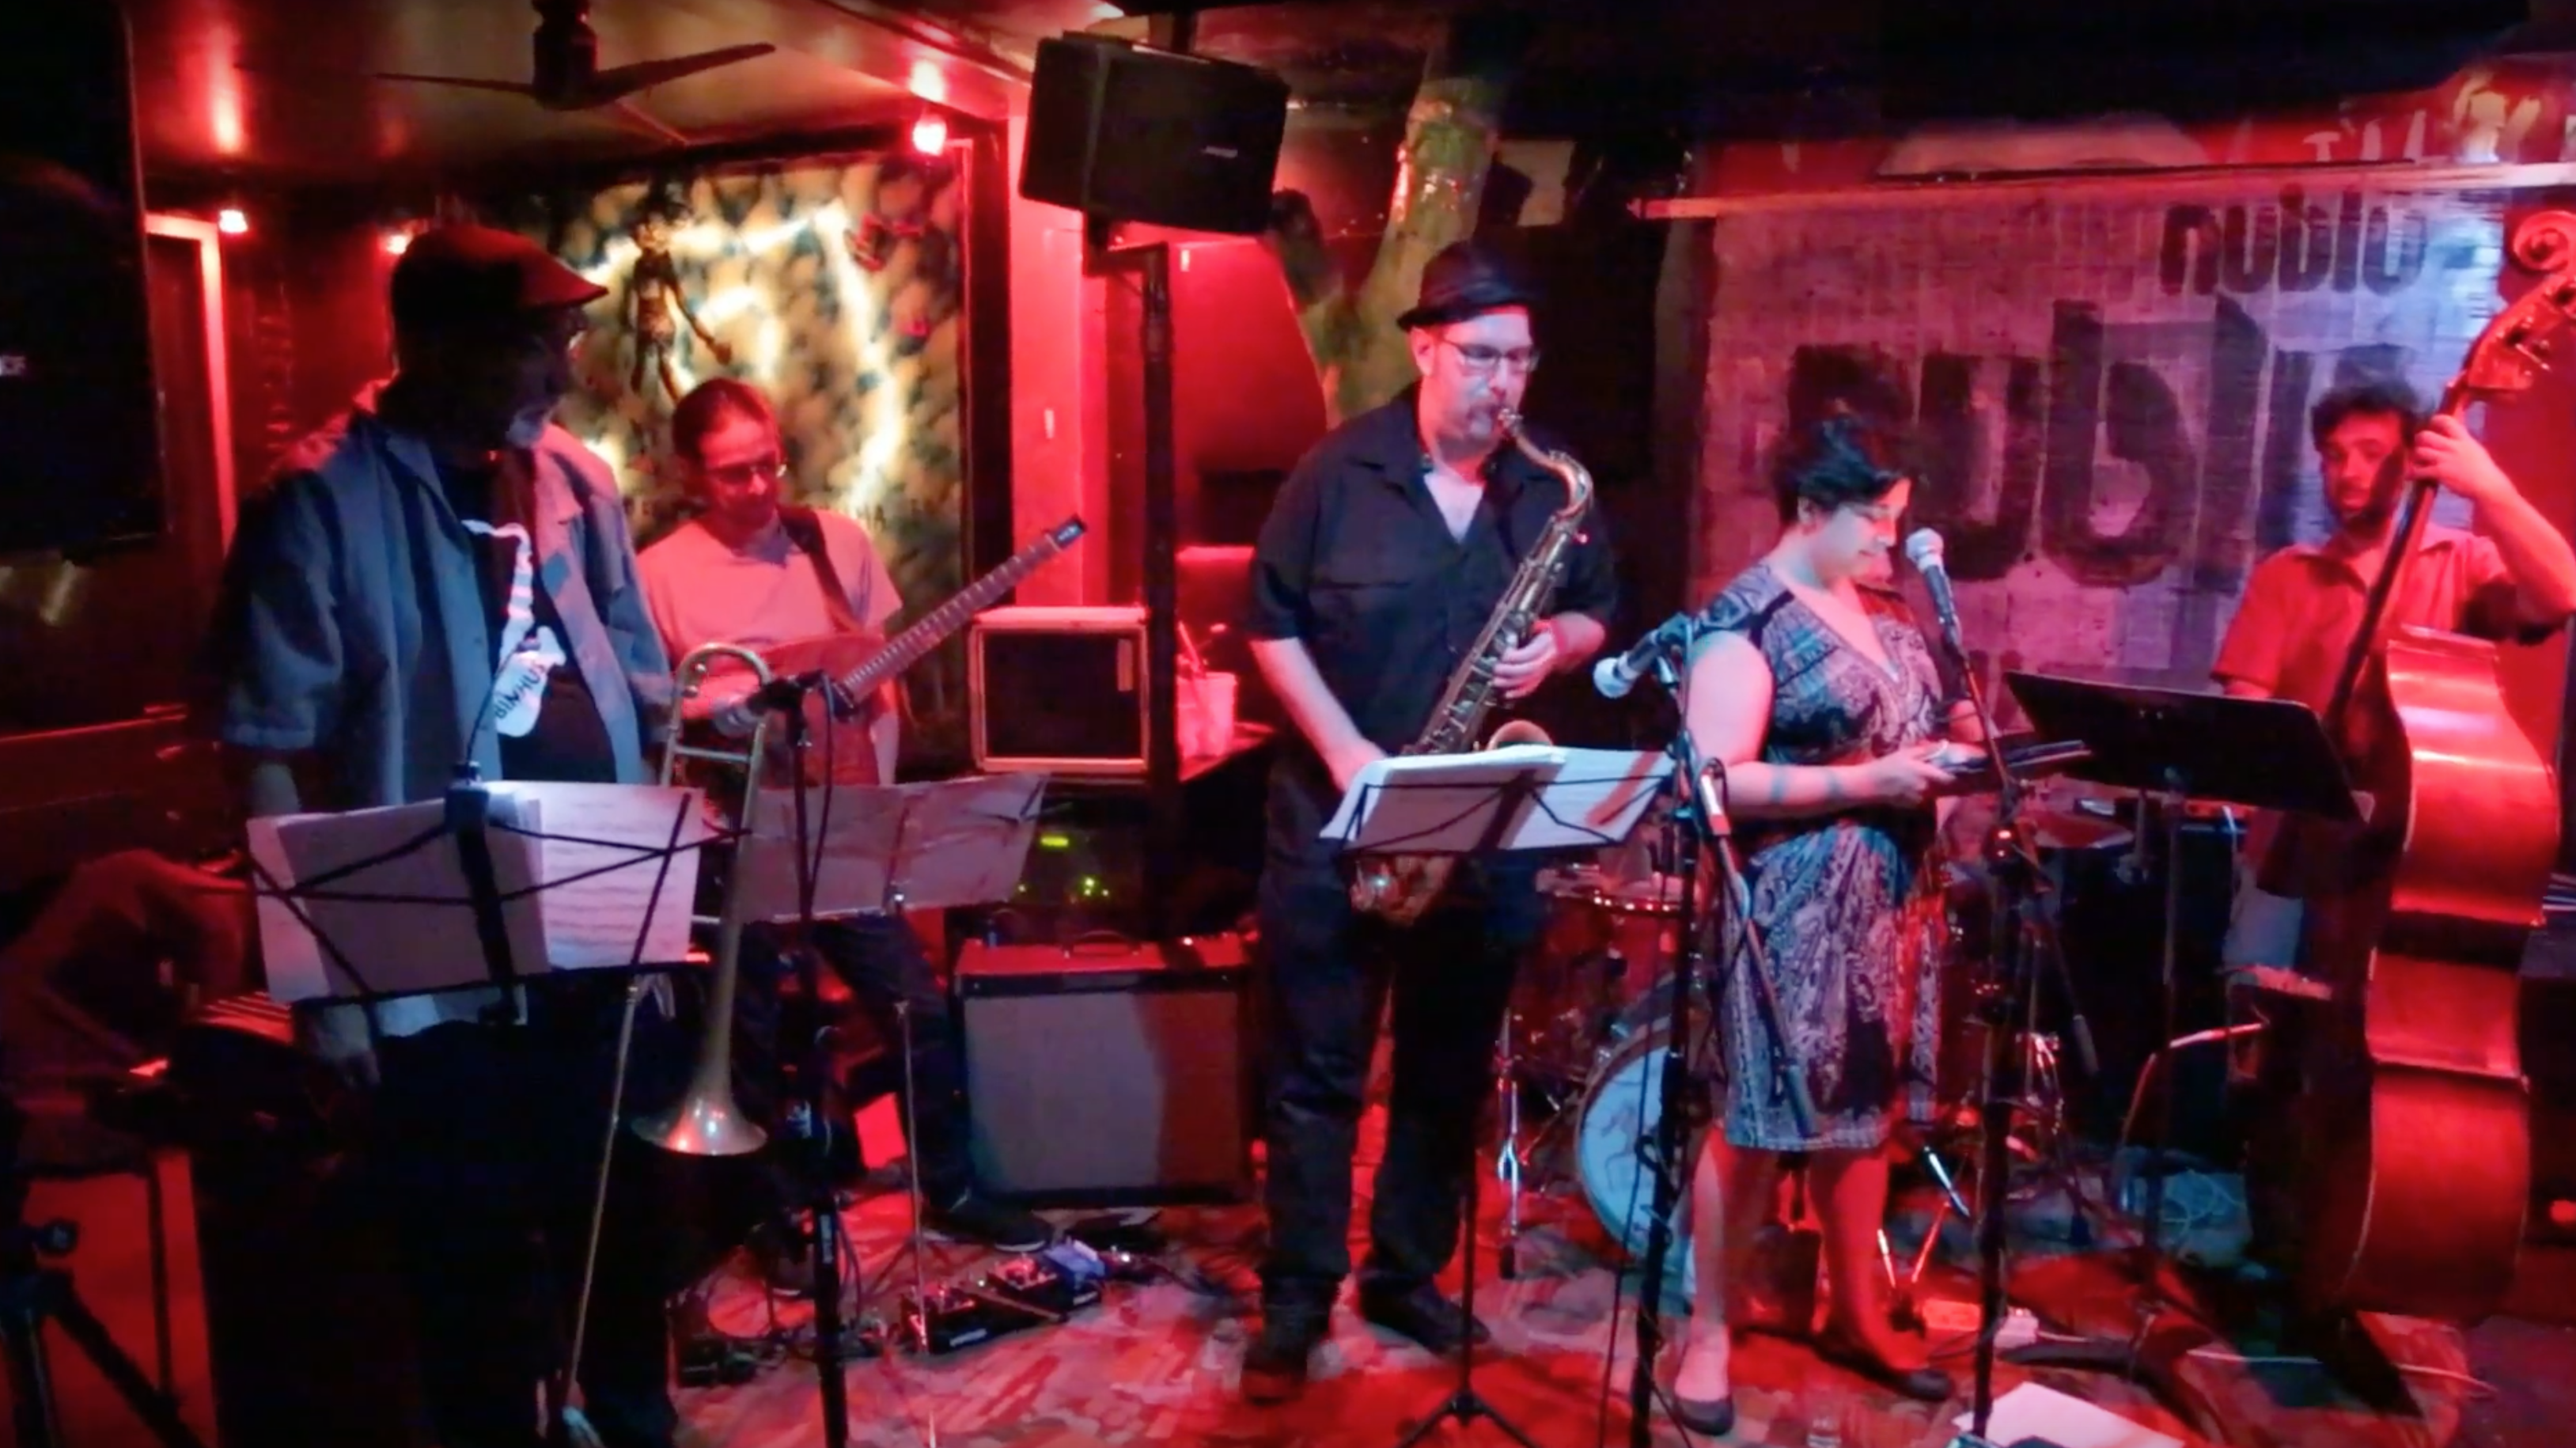 Sean Sonderegger's Magically Inclined @ Nublu [June – 20]